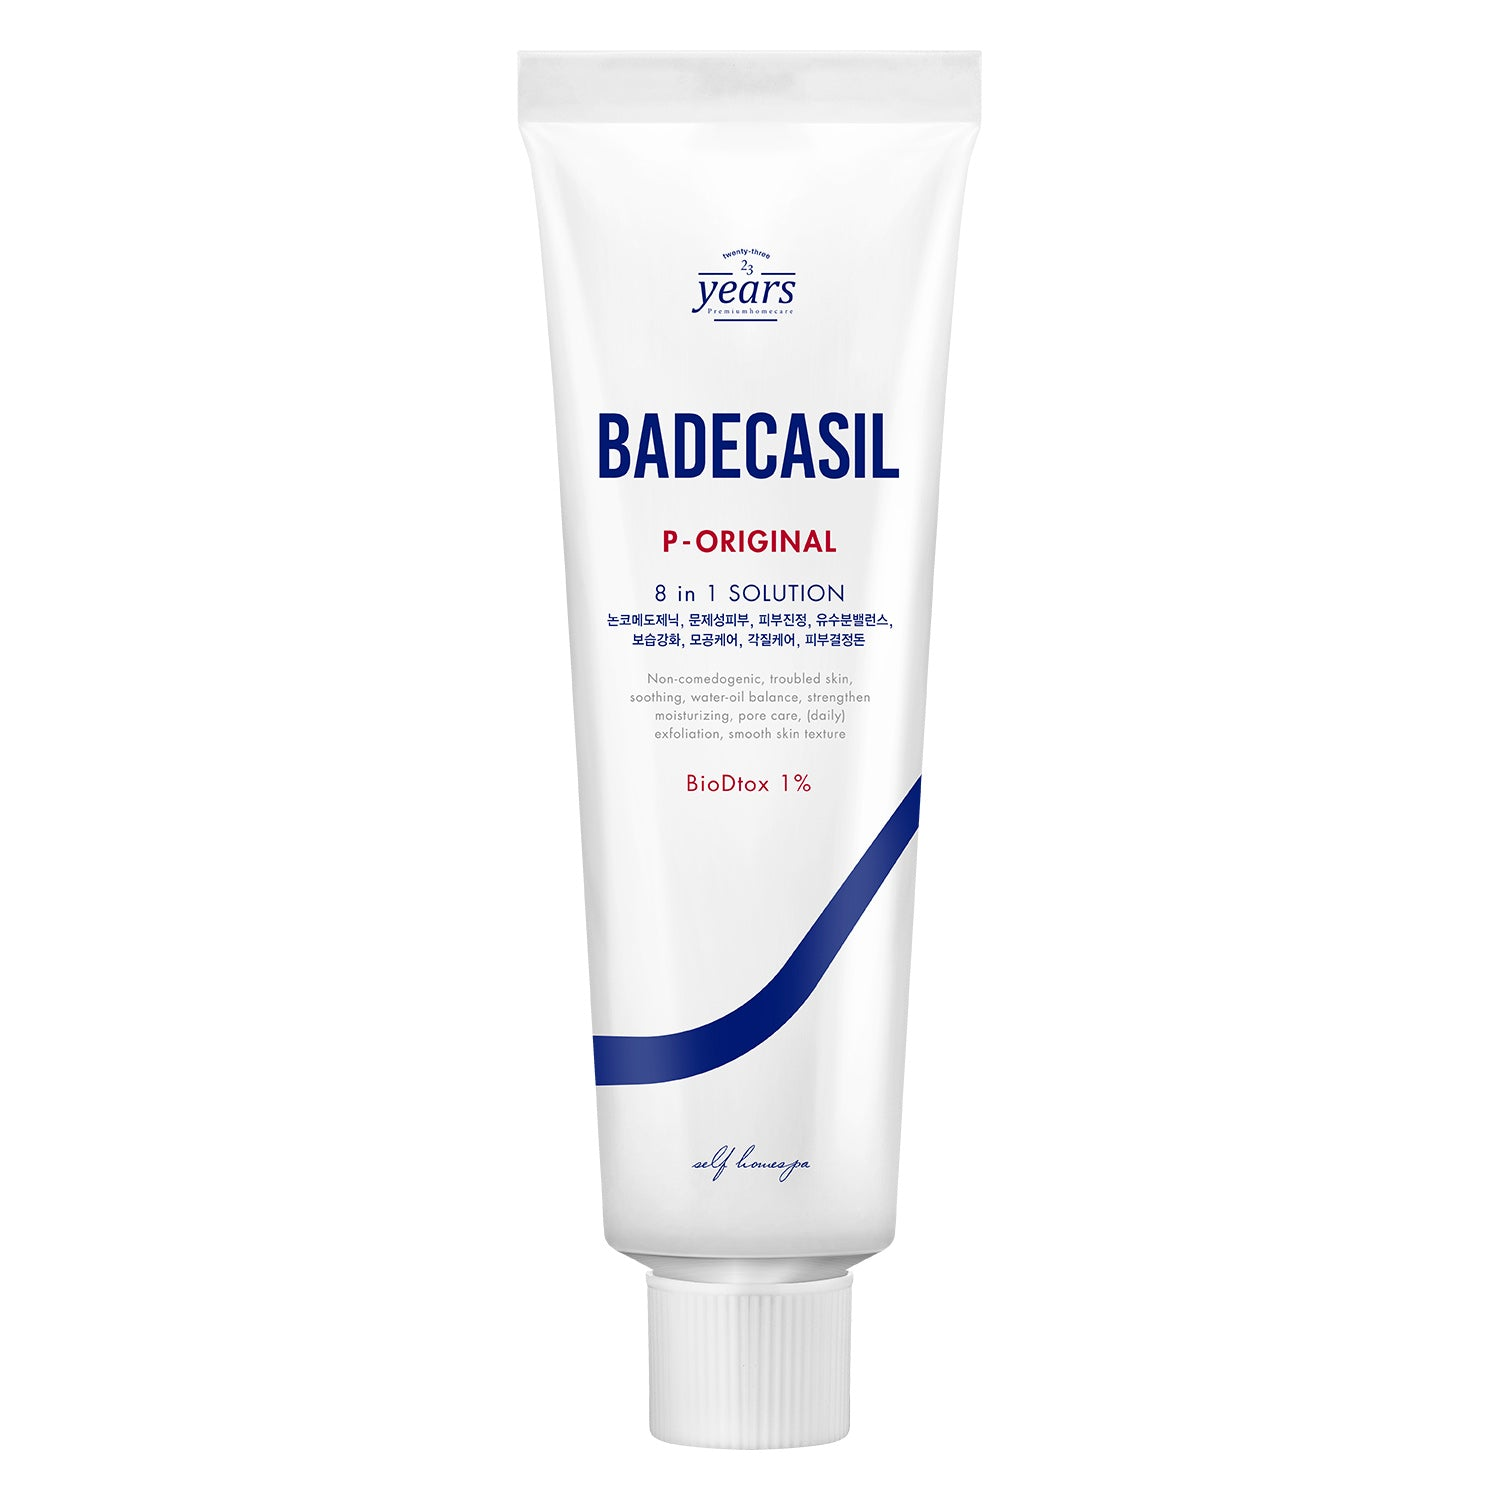 [23 years old] Badecasil P-Original 30g